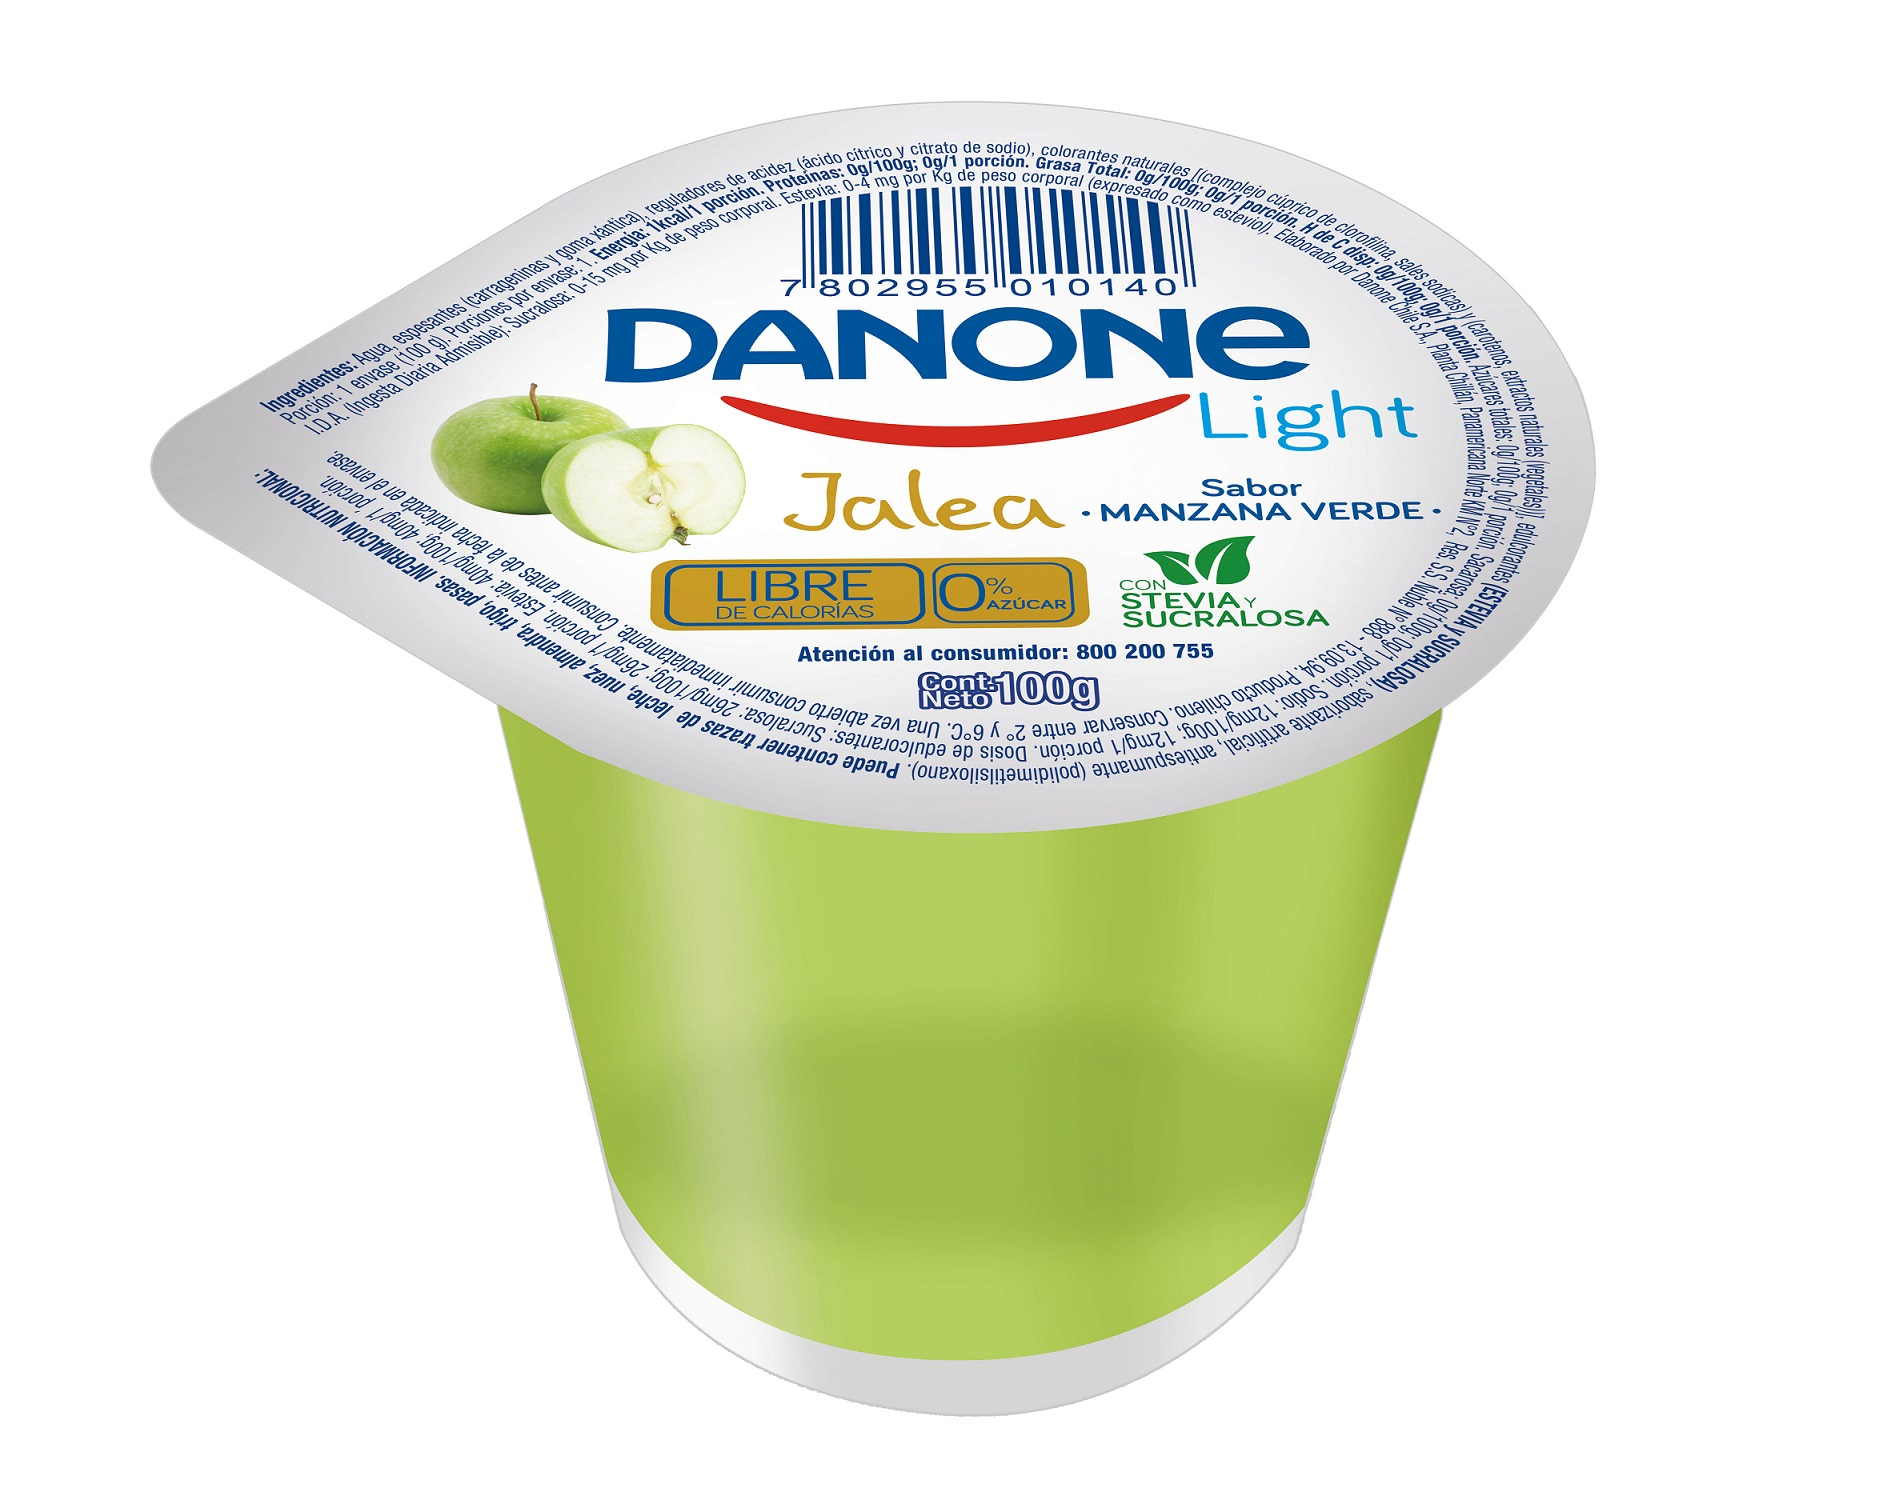 Jalea  Manzana Danone Light 100g